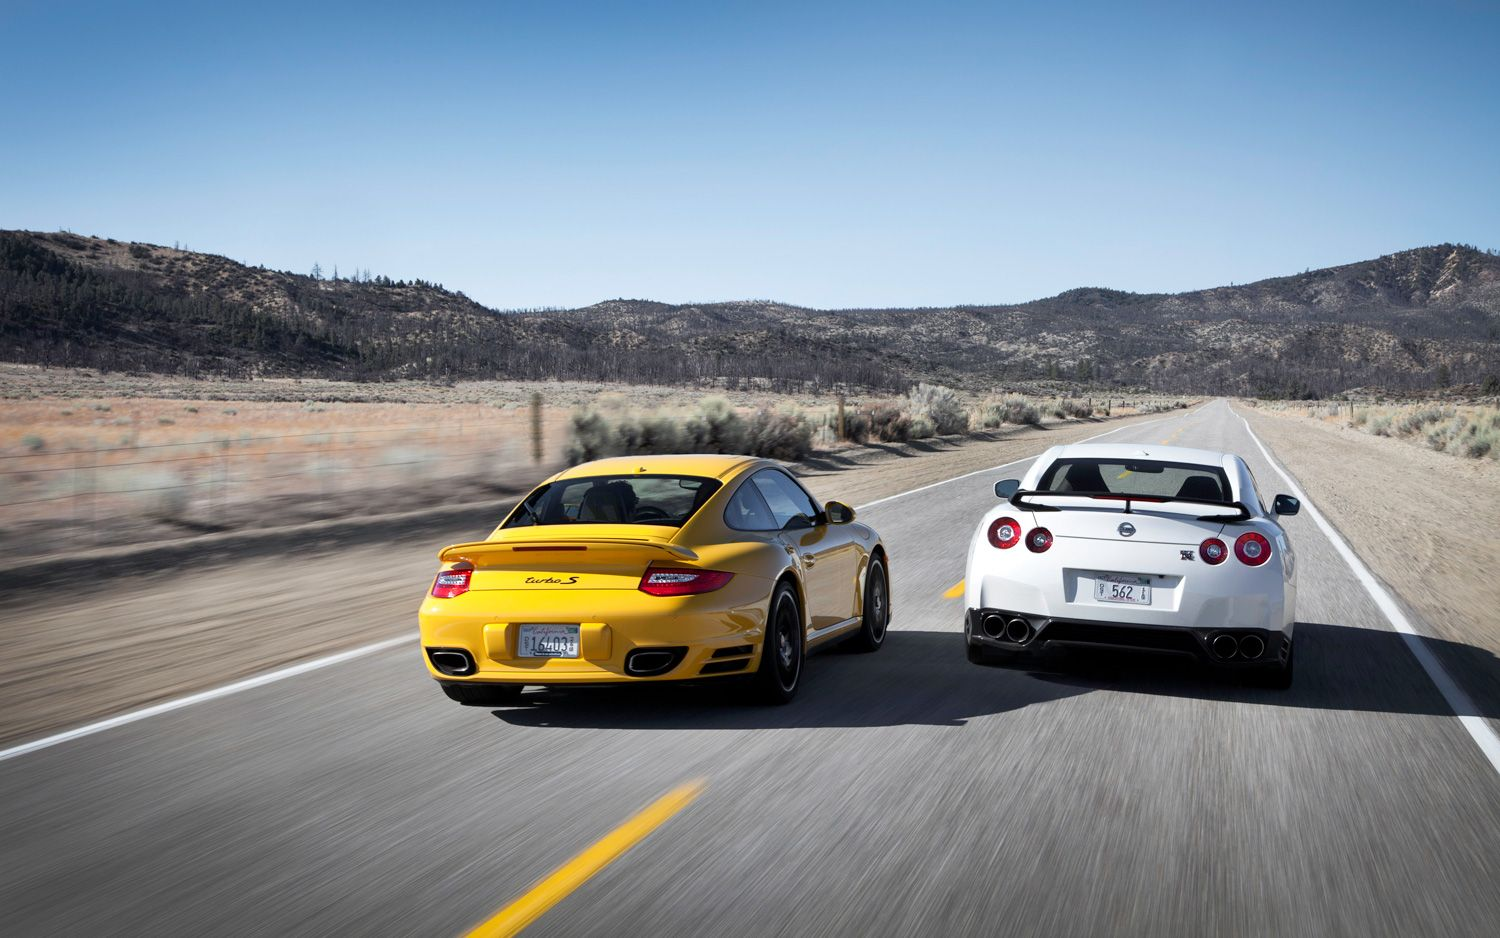 thread of the day: 2013 nissan gt-r or 2012 porsche 911 turbo s